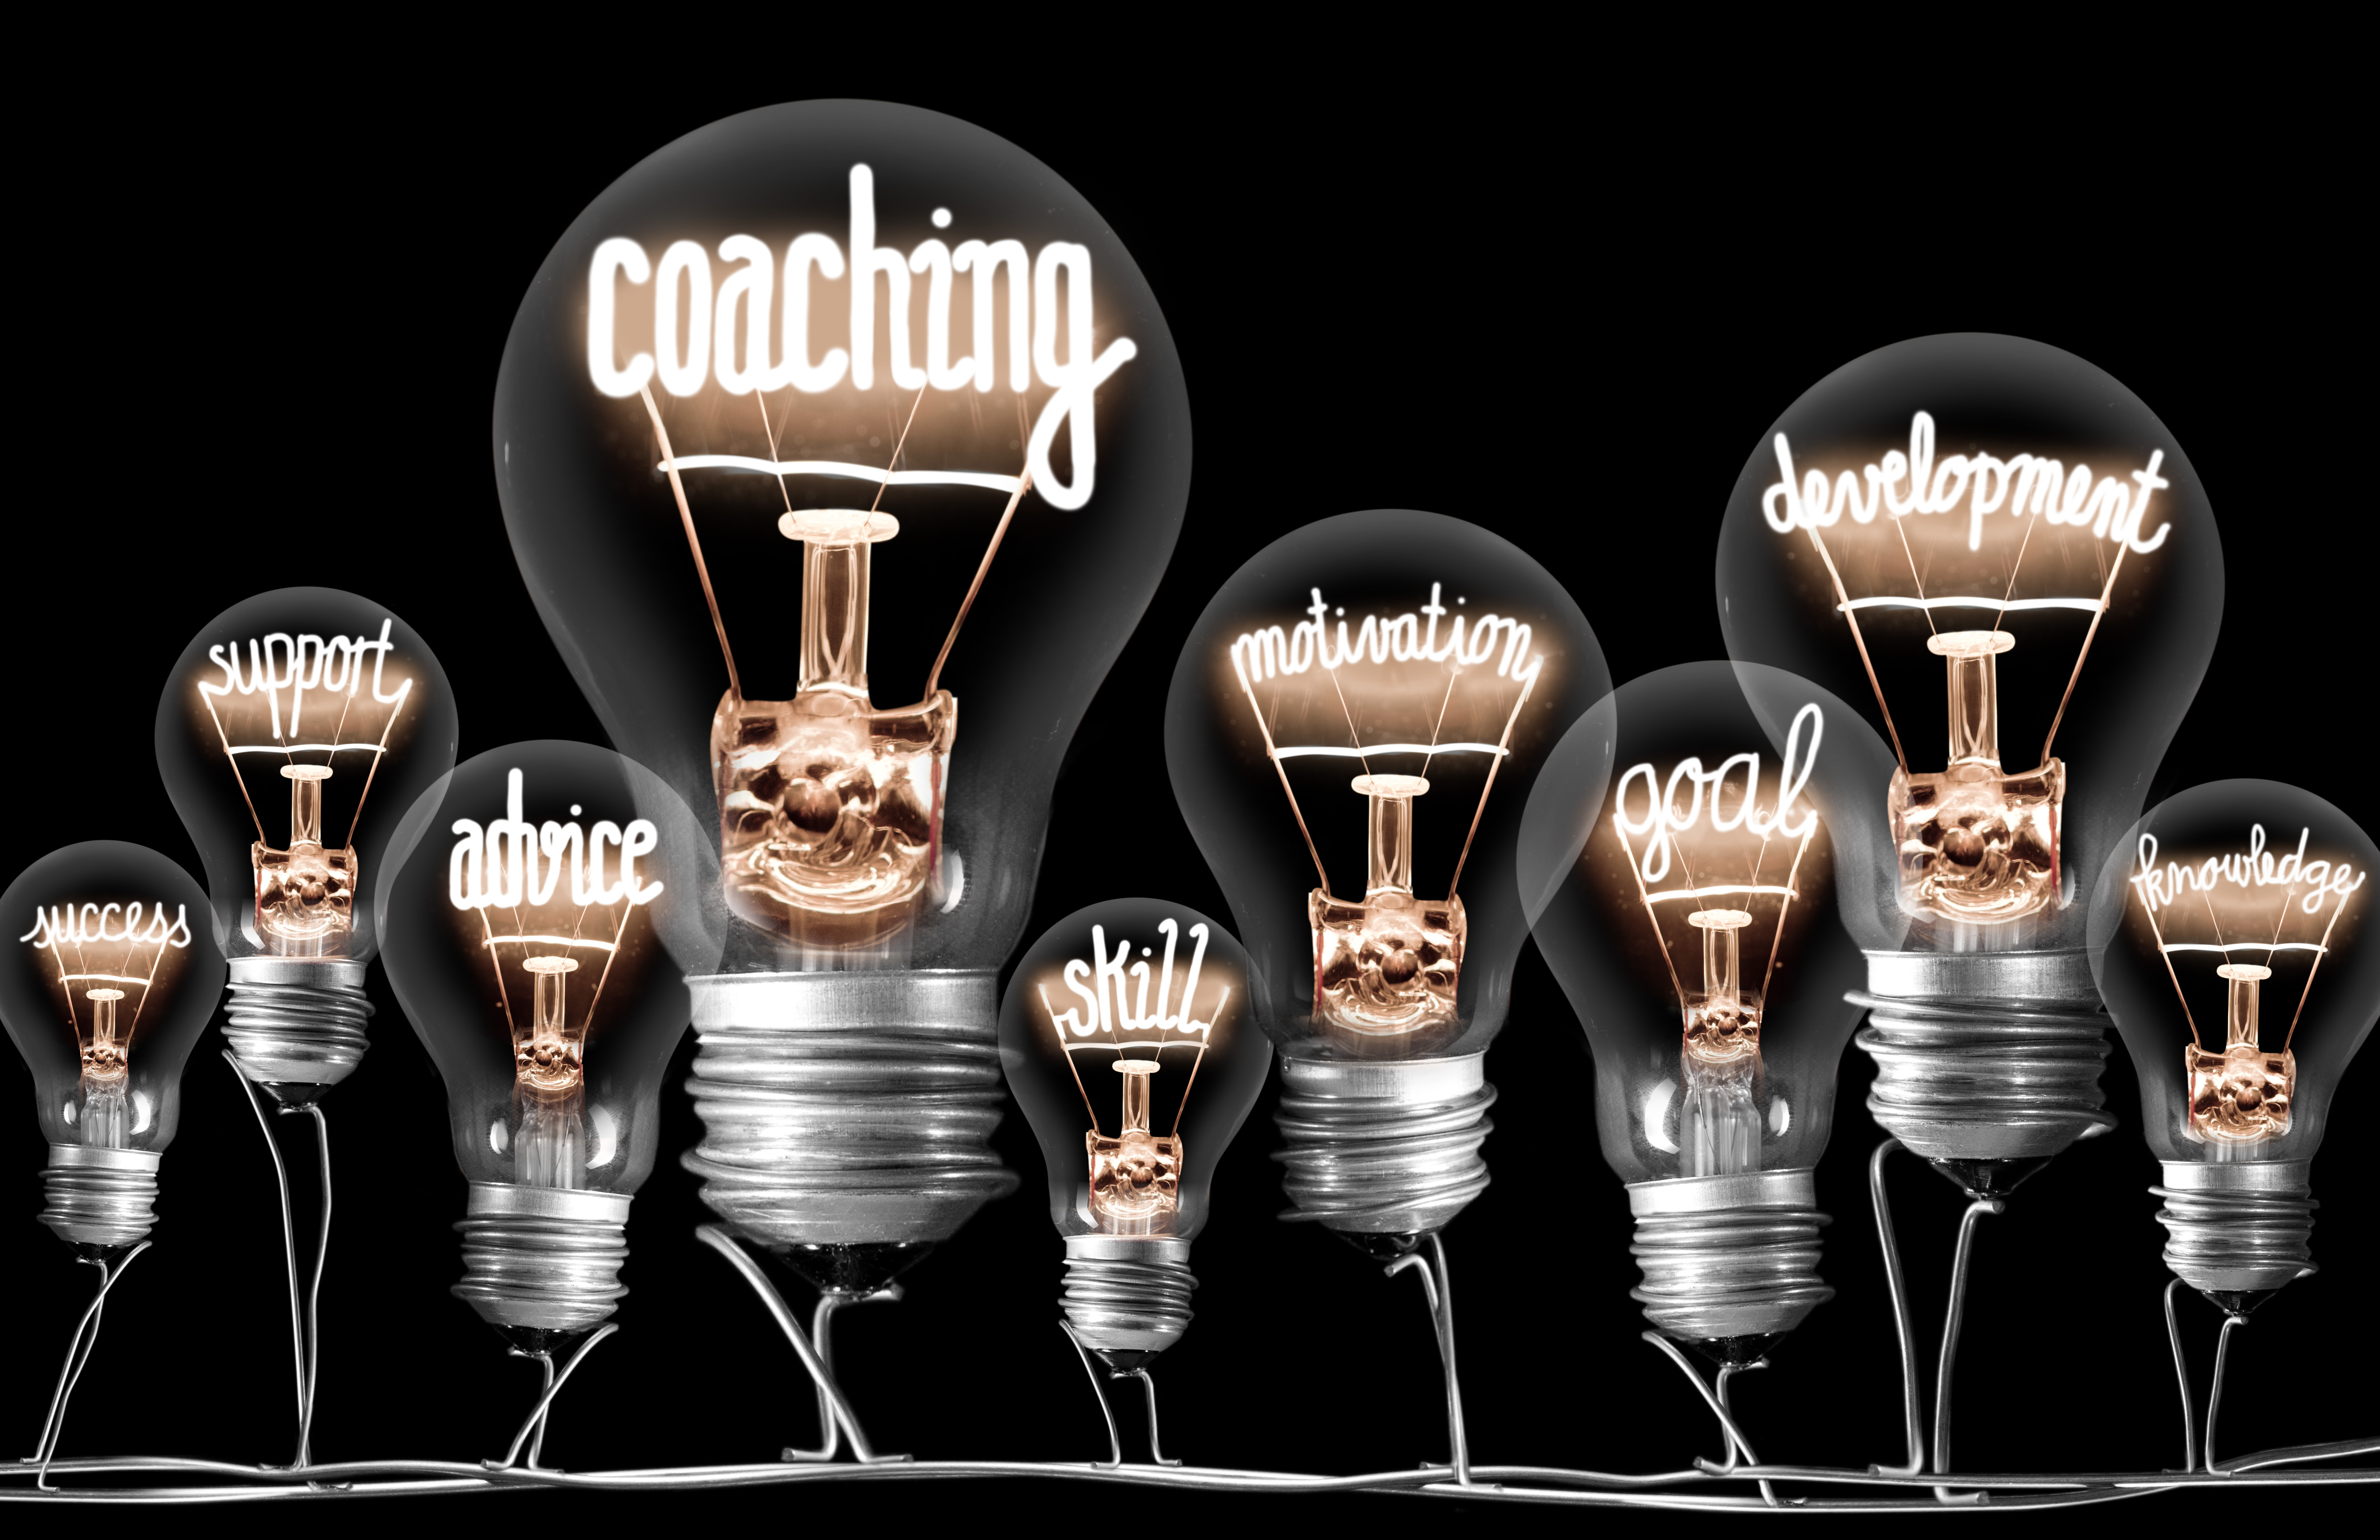 Coaching Others Towards Personal and Professional Victory